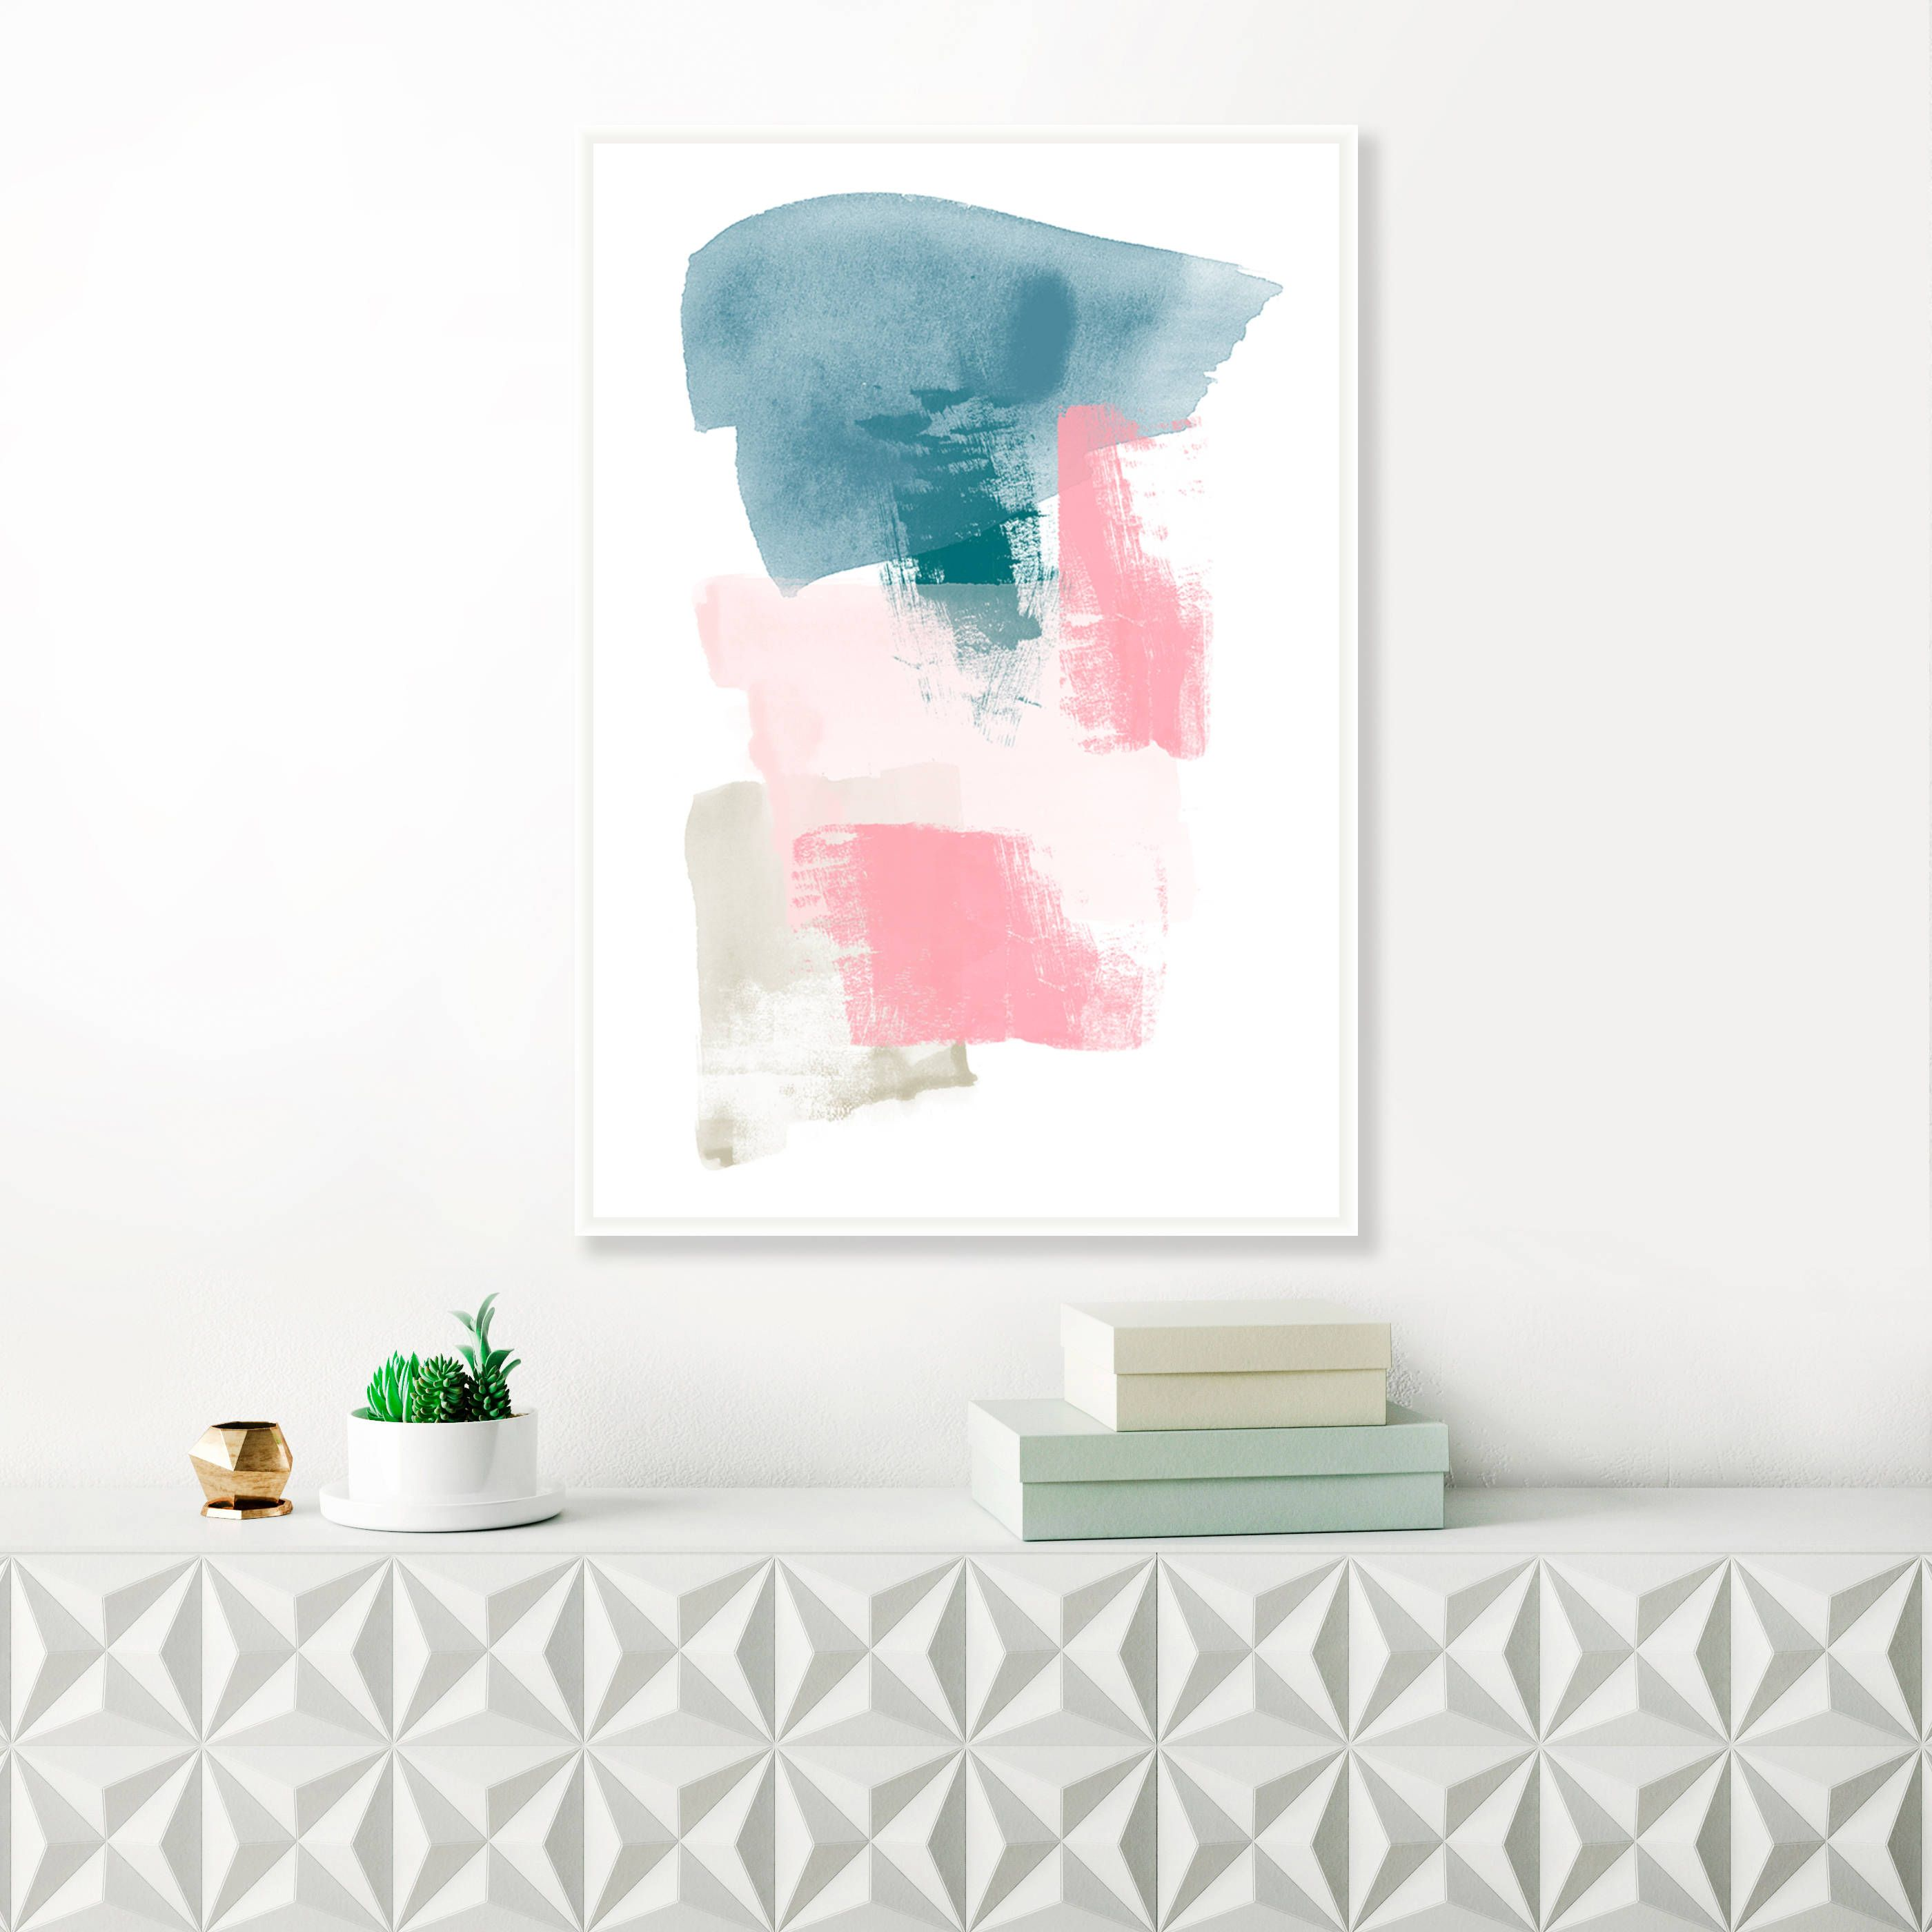 Affordable Wall Art Entrancing Modern Painting Pink And Teal Abstract Art Minimalist Painting Design Decoration